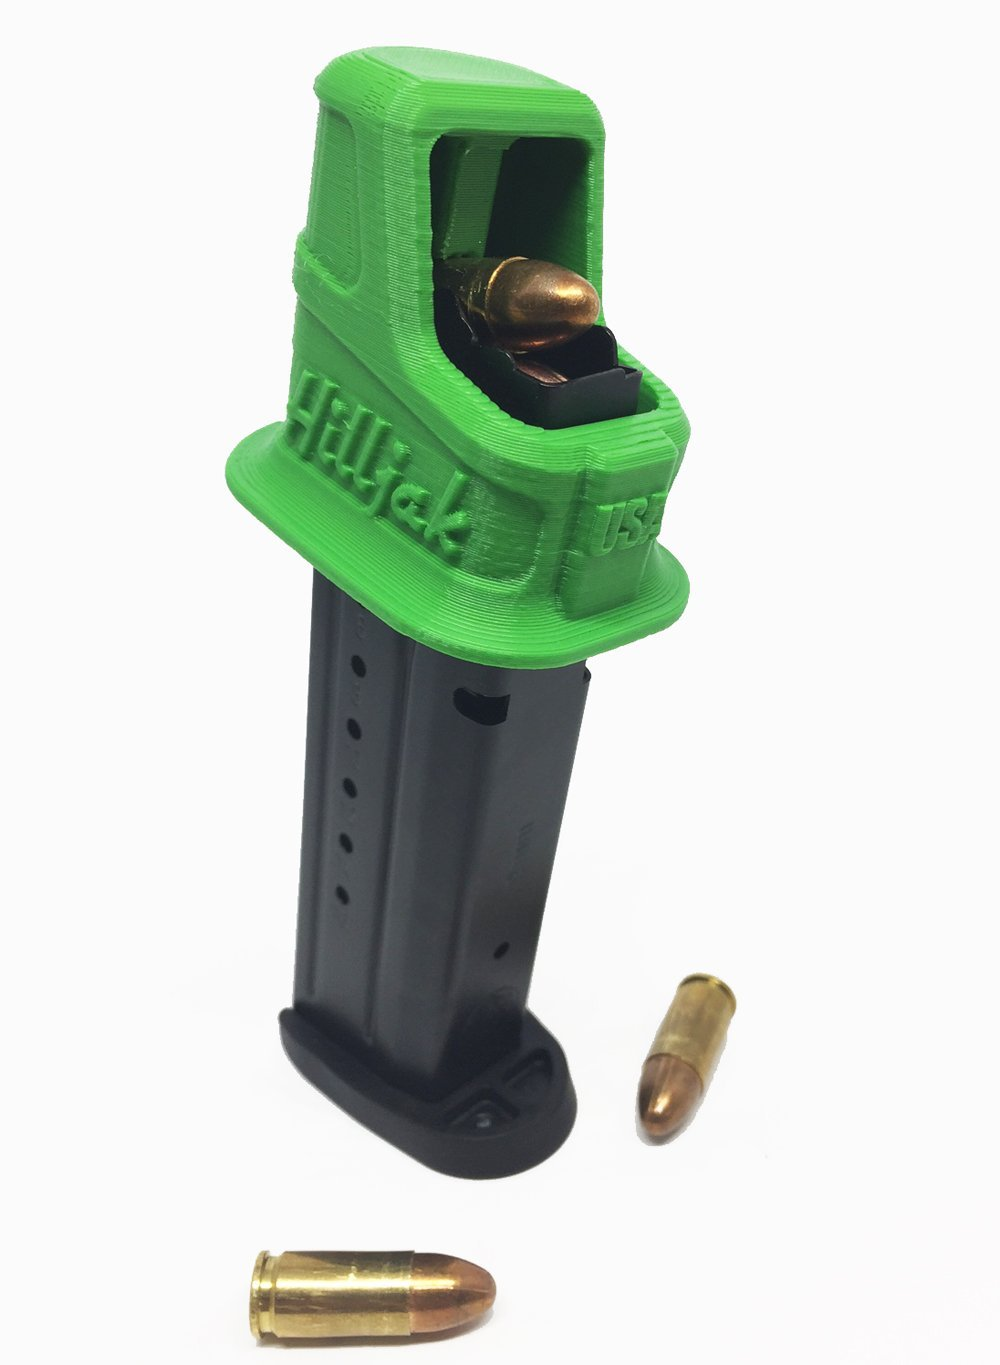 Springfield Armory XD, XD(M), XD Mod 2, 9MM Double-Stack Magazine Loader by Hilljak, Hunter Green